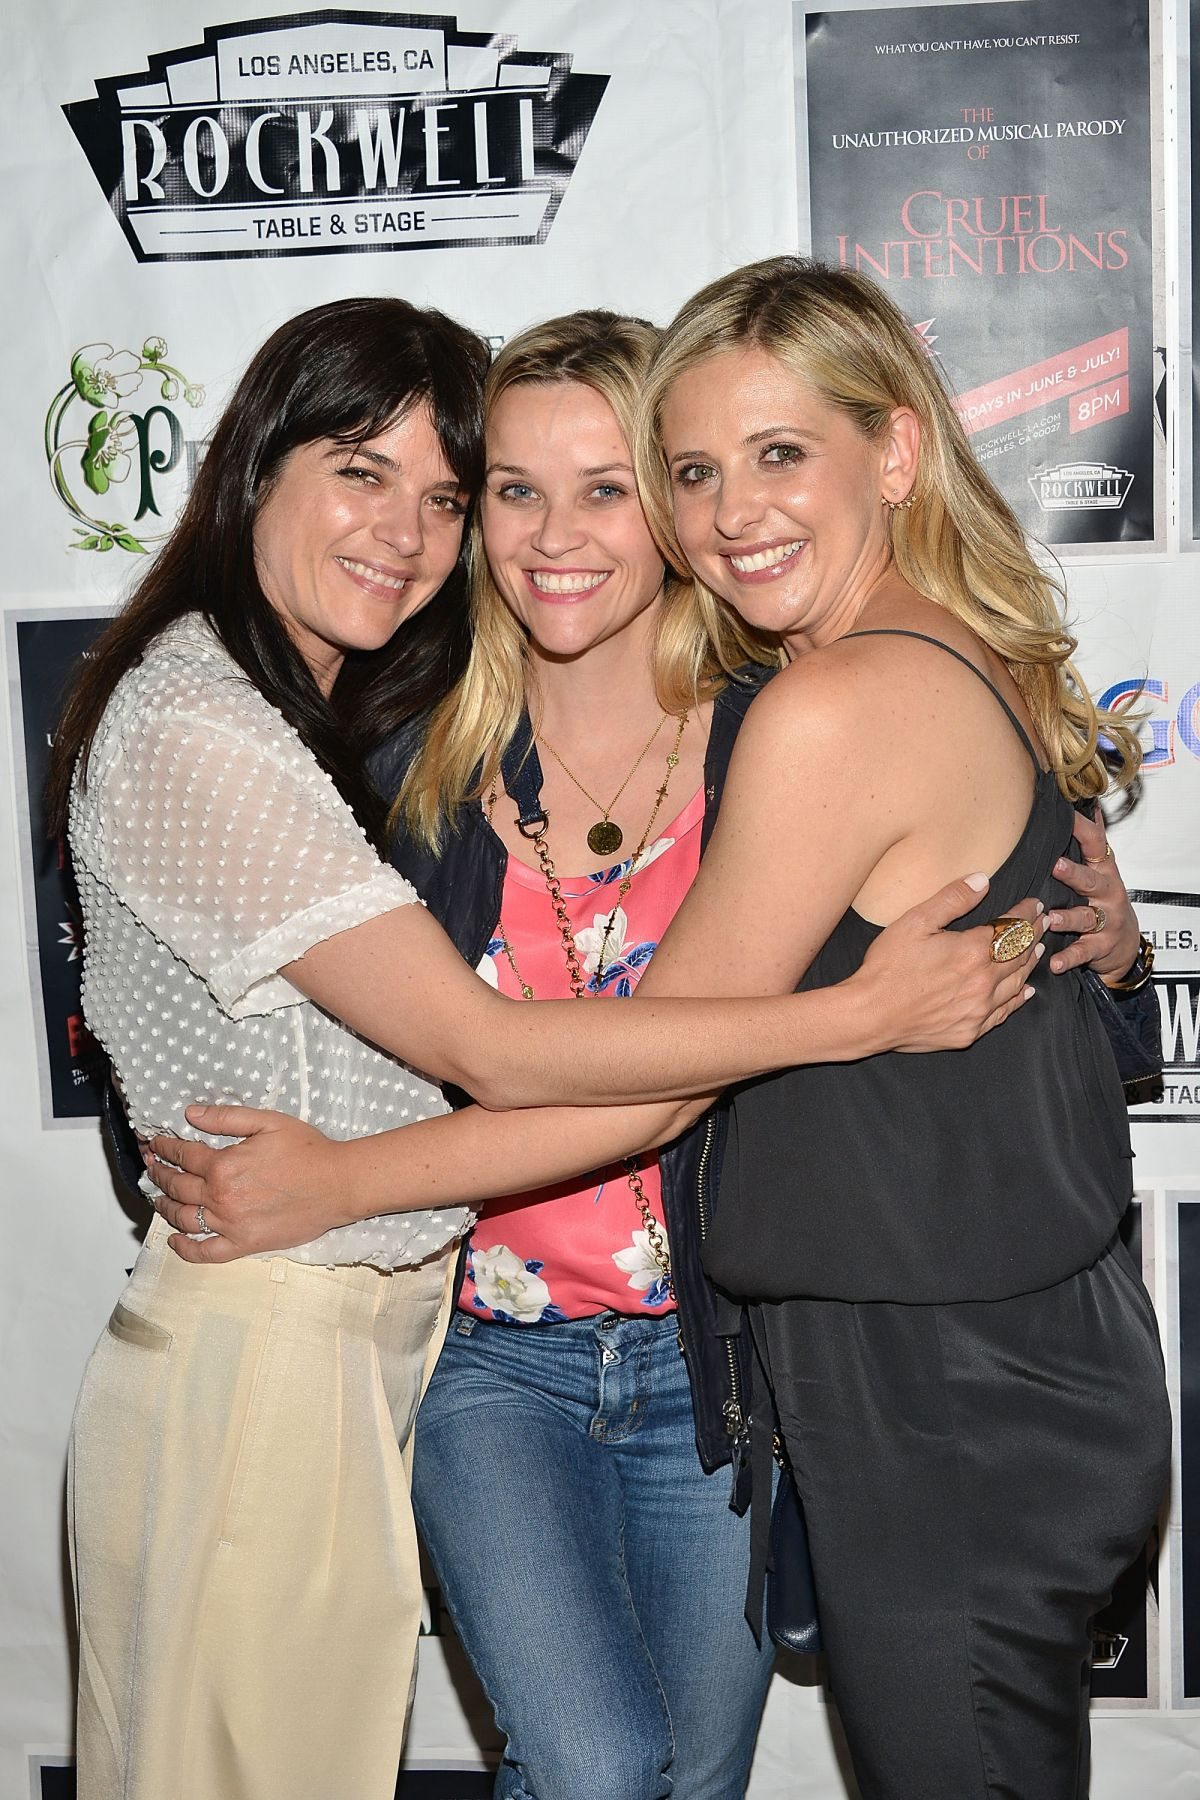 REESE WITHERSPON and SARAH MICHELLE GELLAR at Cruel Intentions Musical Parody in Los Angeles